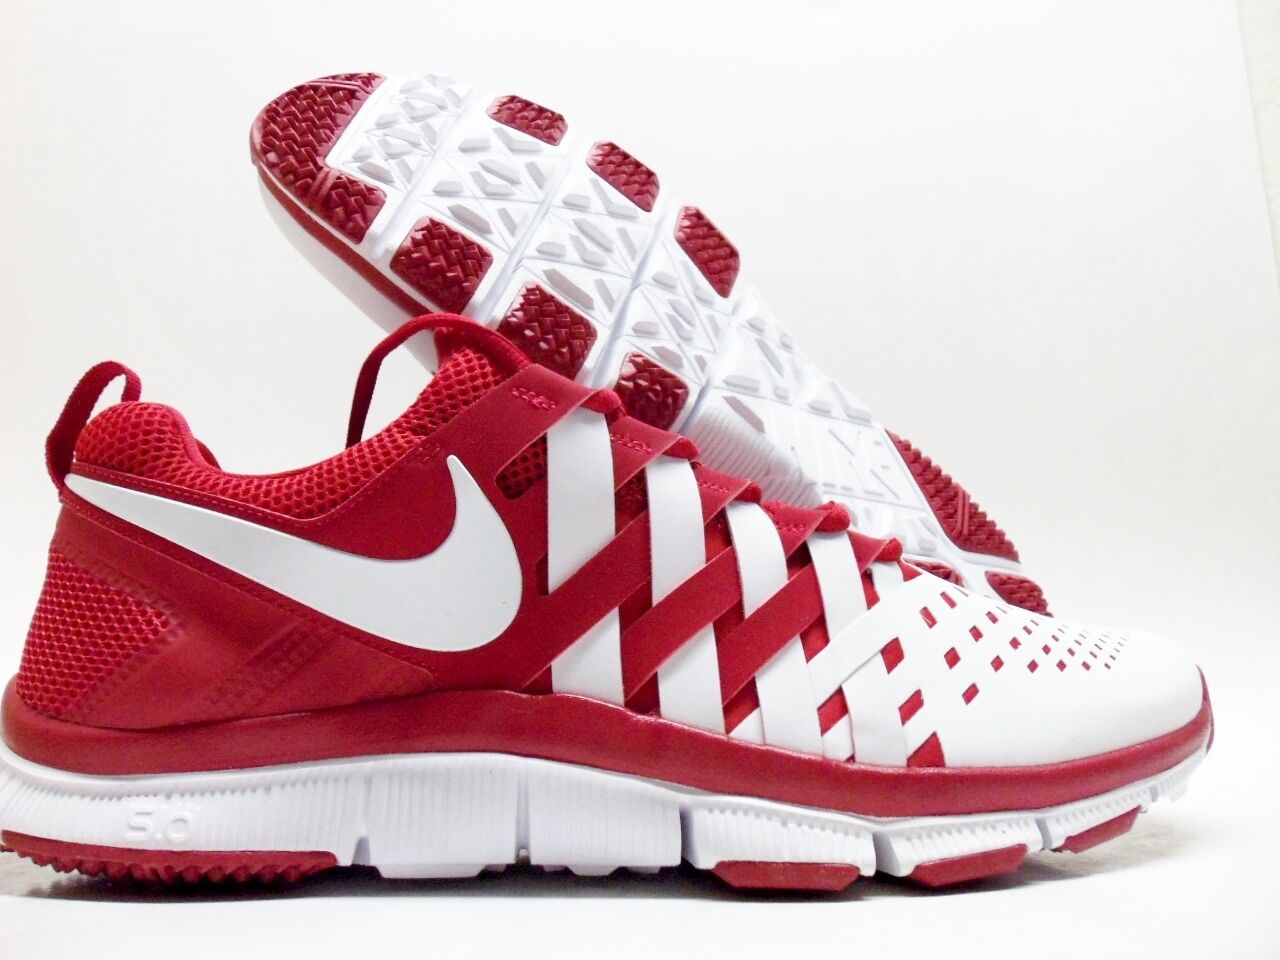 NIKE FREE TRAINER 5.0 TB GYM RED/WHITE SIZE MEN'S 14 [579811-601]